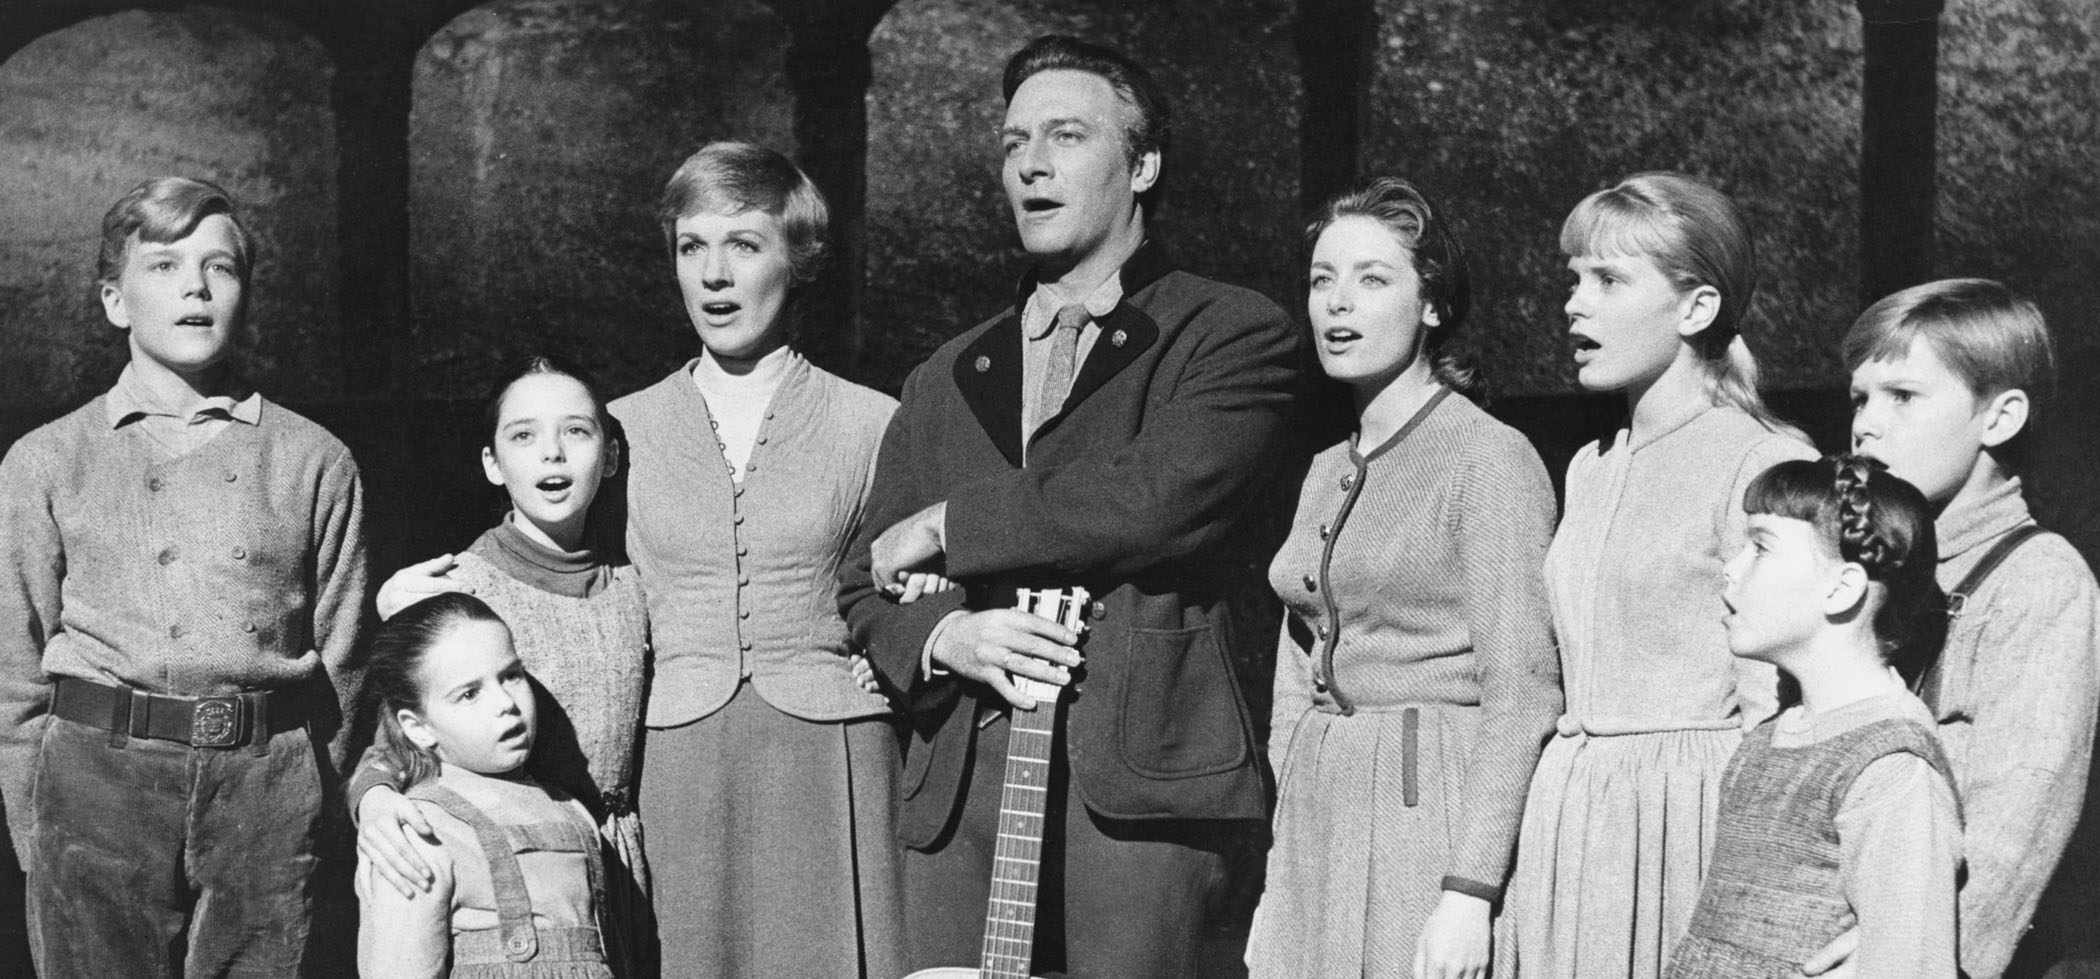 Sound of Music Von Trapp Family